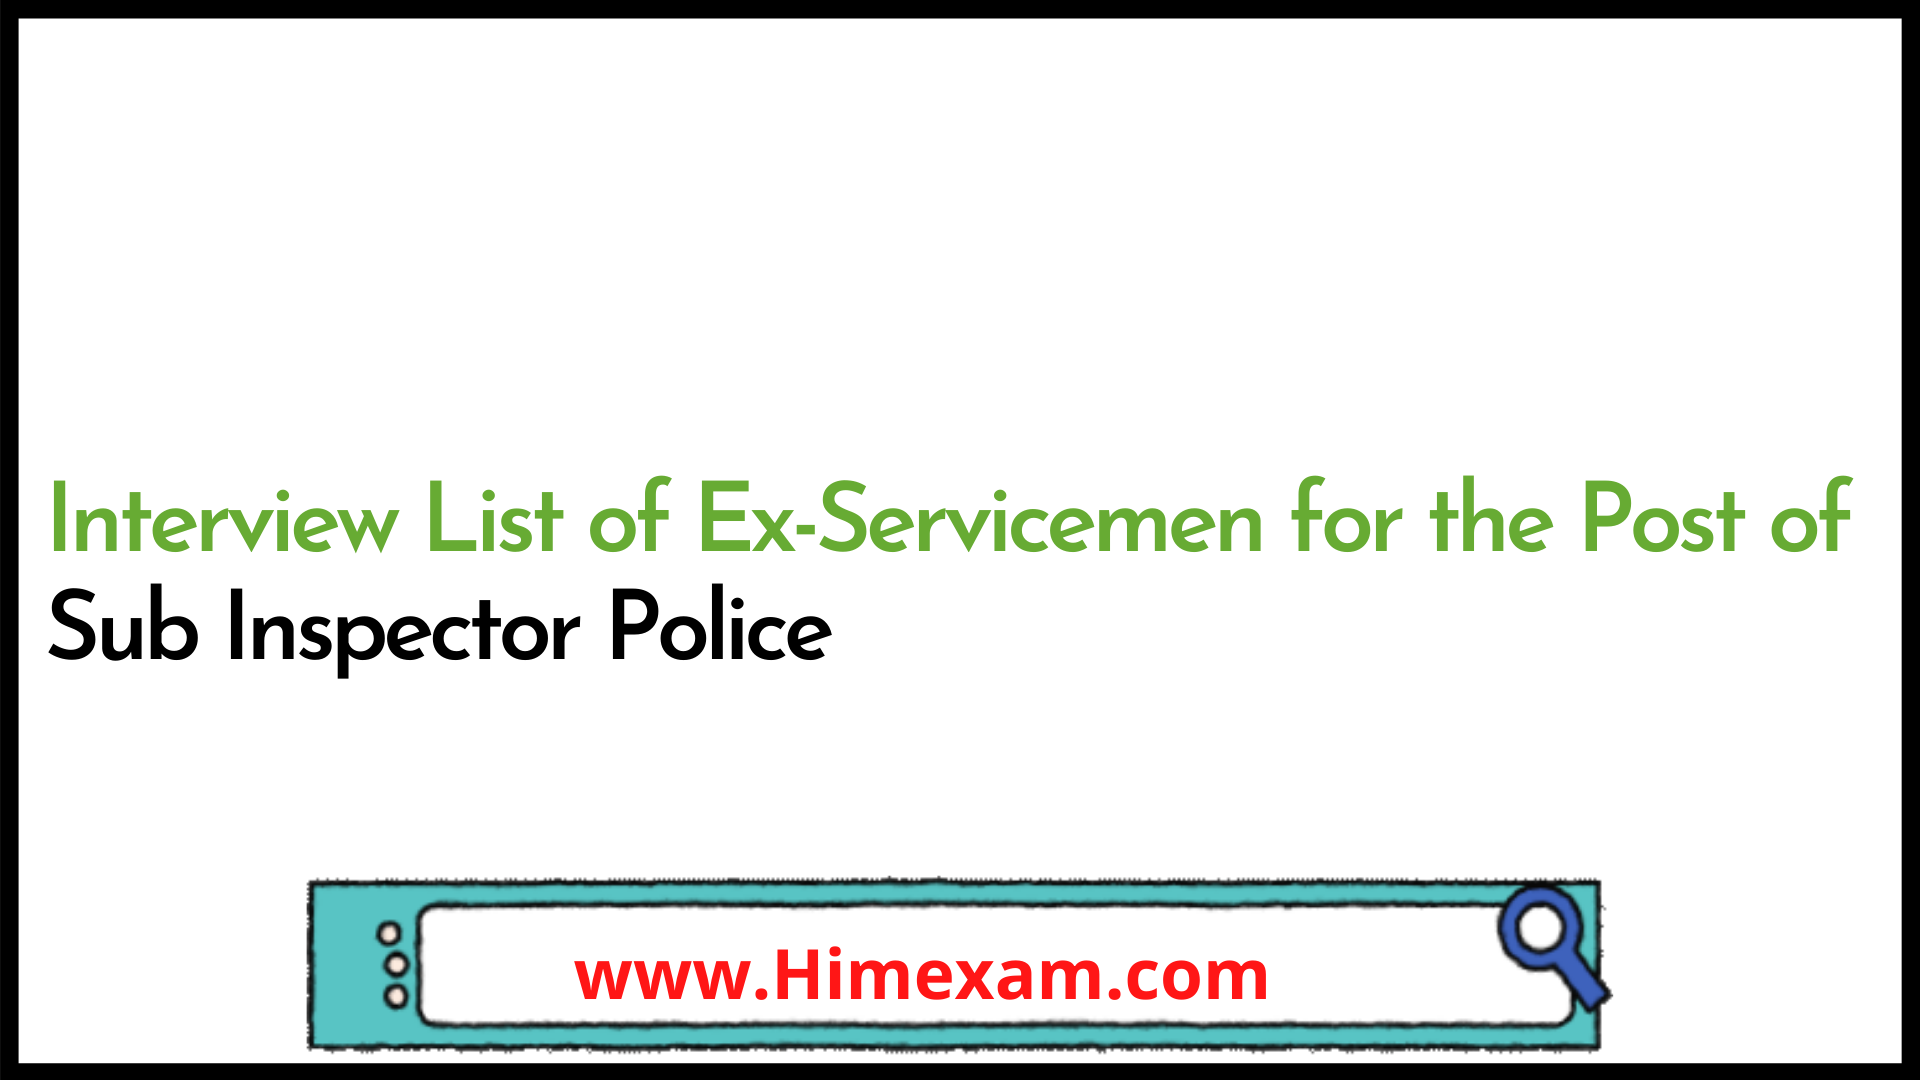 Interview List of Ex-Servicemen for the Post of Sub Inspector Police